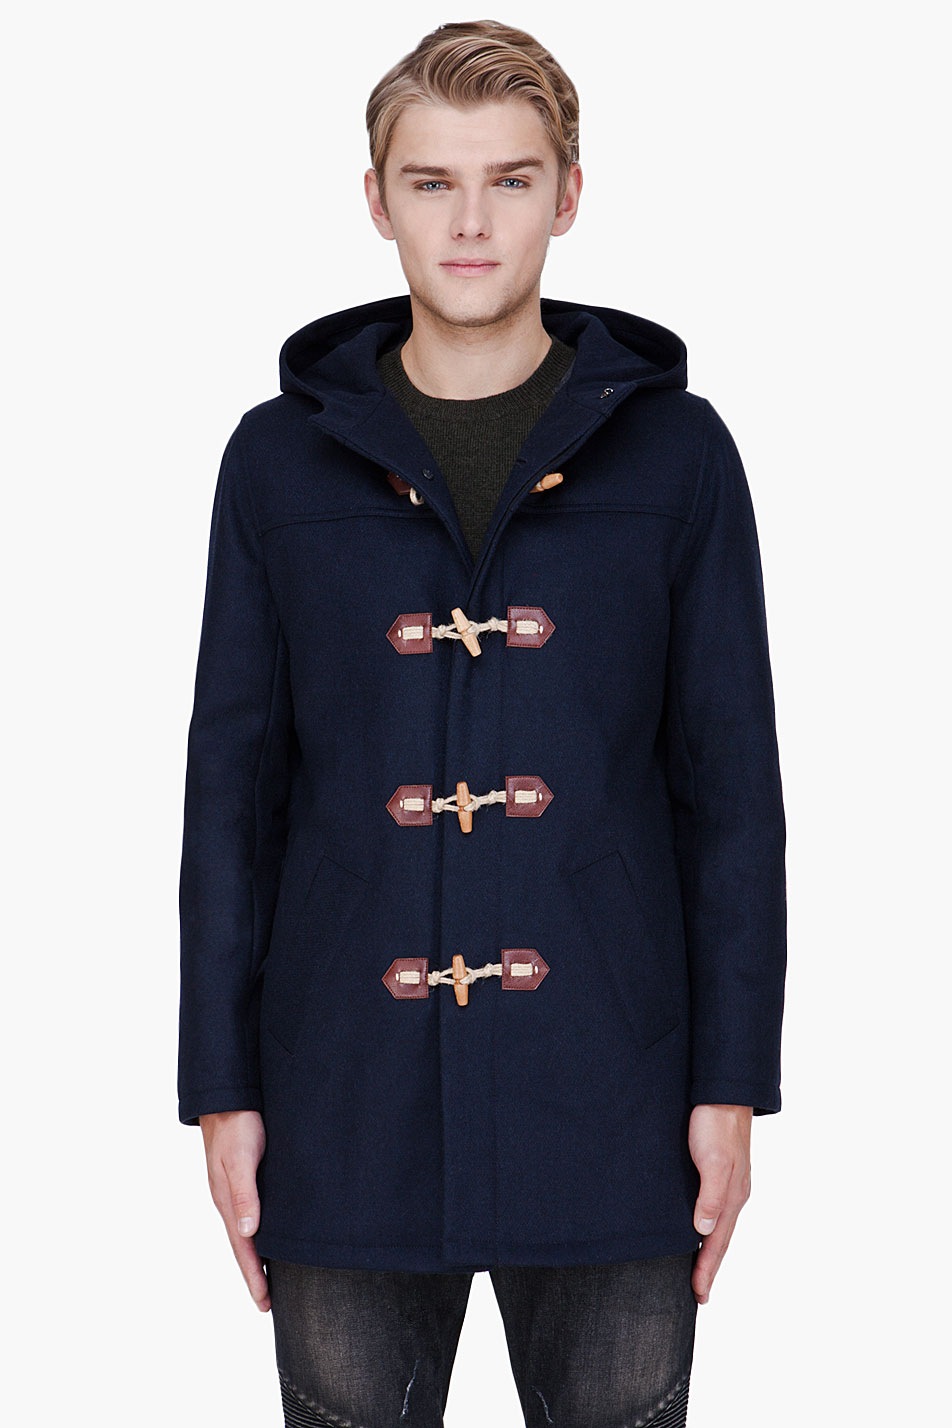 Mid length classic wool mix duffle coat in navy. Hand made in England- really- not all `British`duffles are made here anymore. Made from the best Italian cloth from Tuscany.